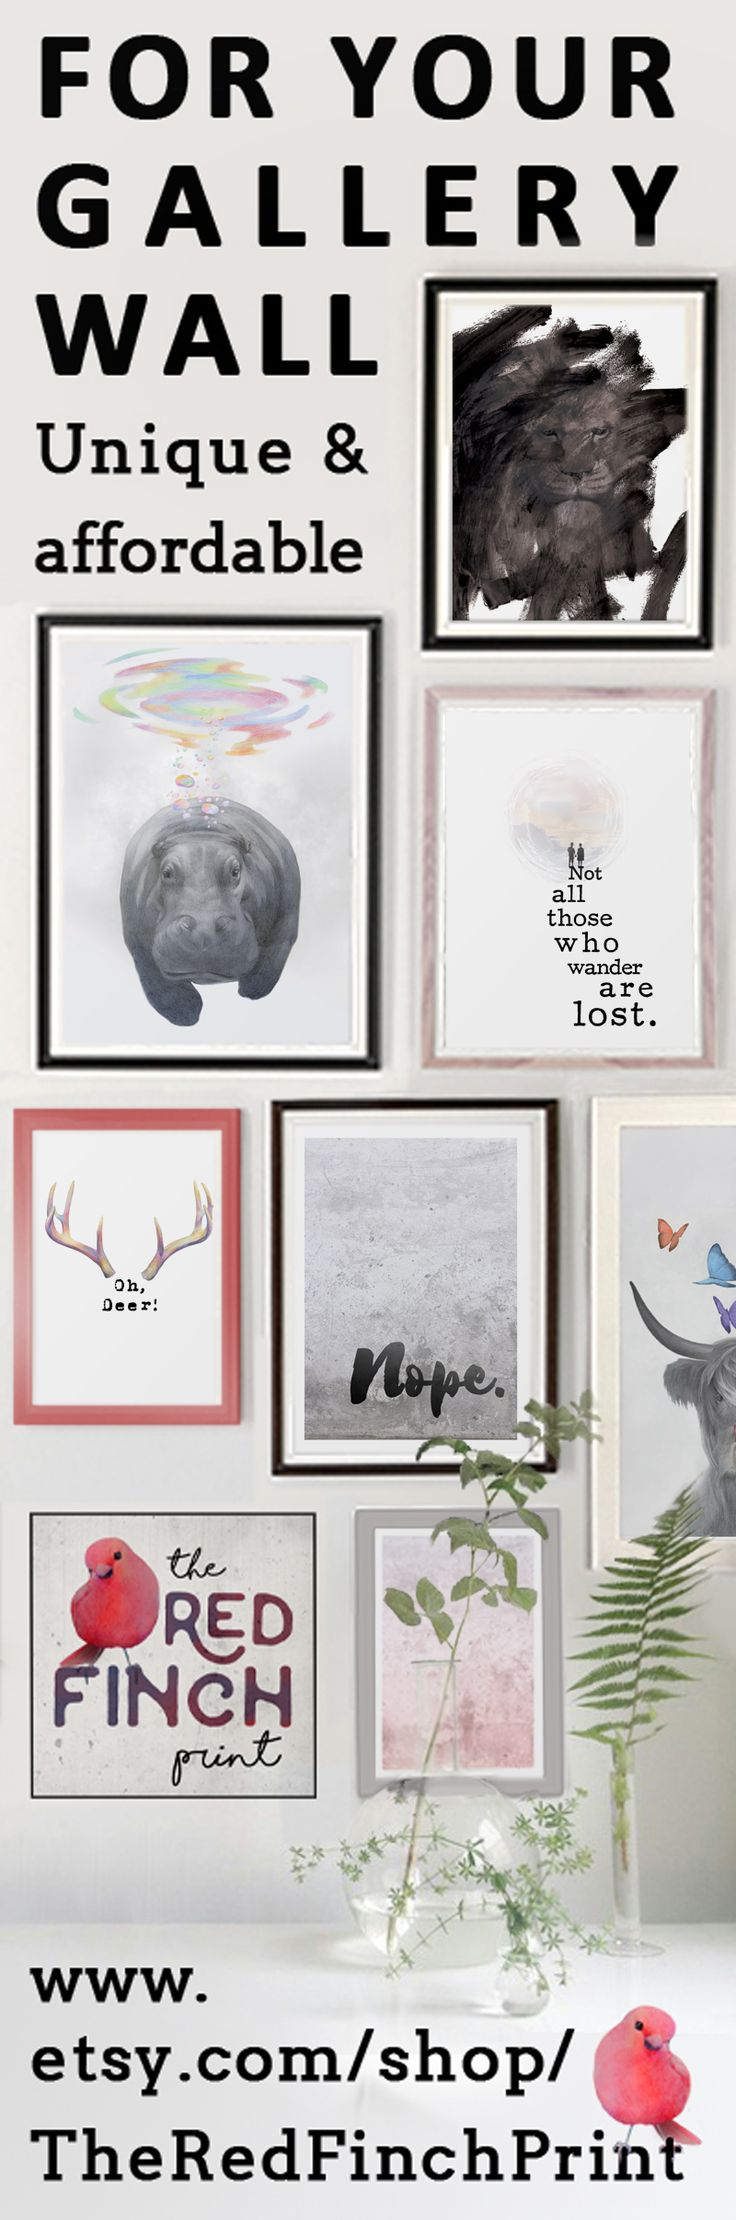 For Your Gallery Wall. Fresh ideas and original art prints: printable wall art, drawings, photos and designs - perfect to instantly decorate rooms, offices and desks. Print at home art - all files are in high resolution.